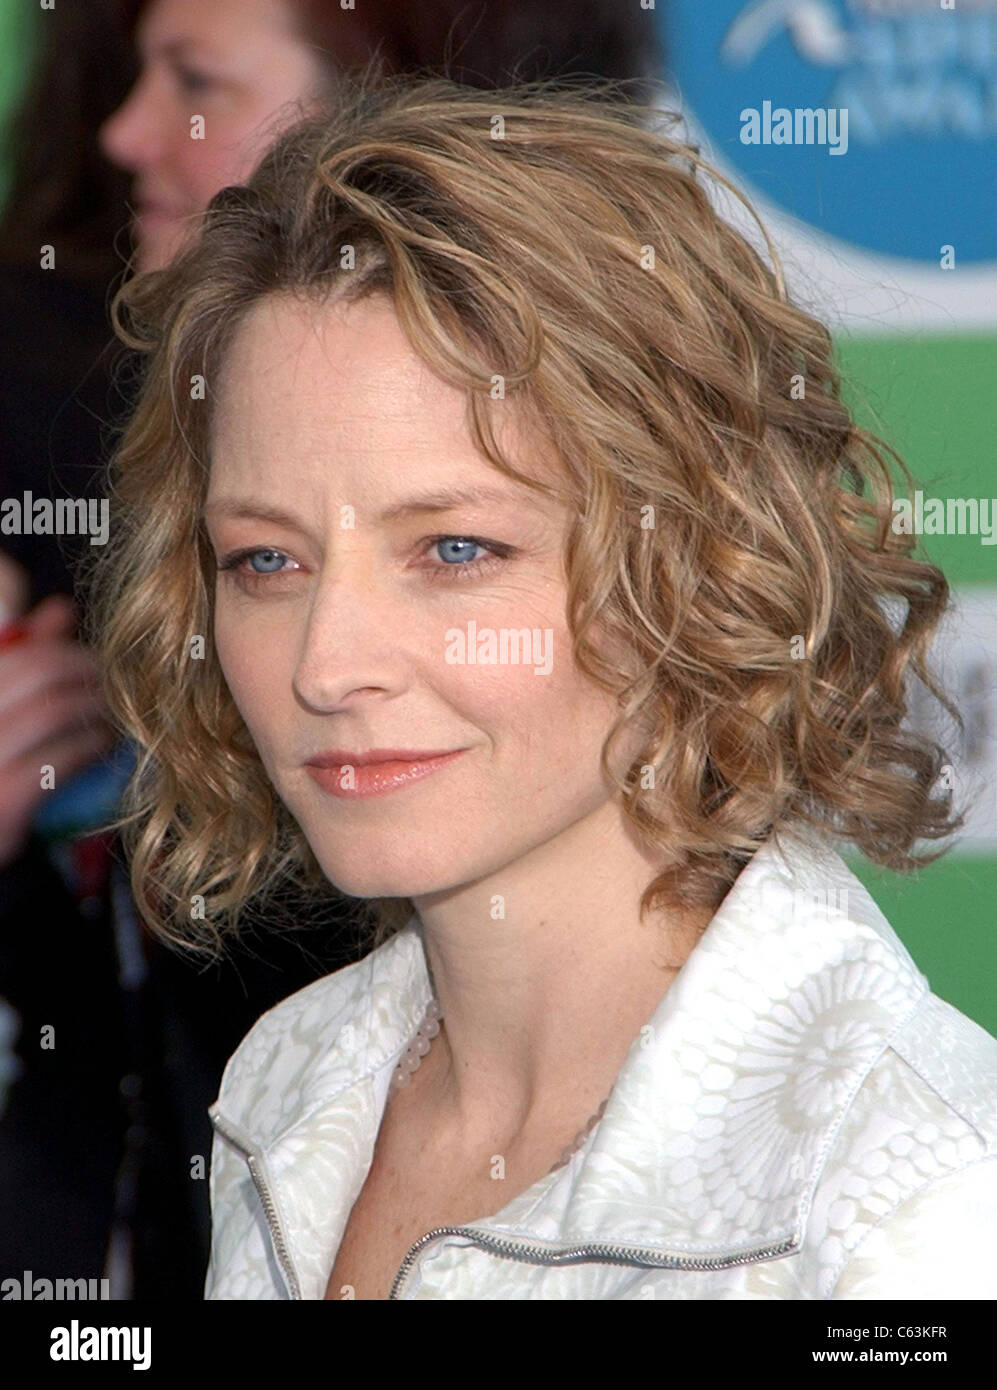 Jodie Foster at arrivals for 20th IFP Independent Spirit Awards, Los Angeles, CA, Saturday, February 26, 2005. Photo - Stock Image